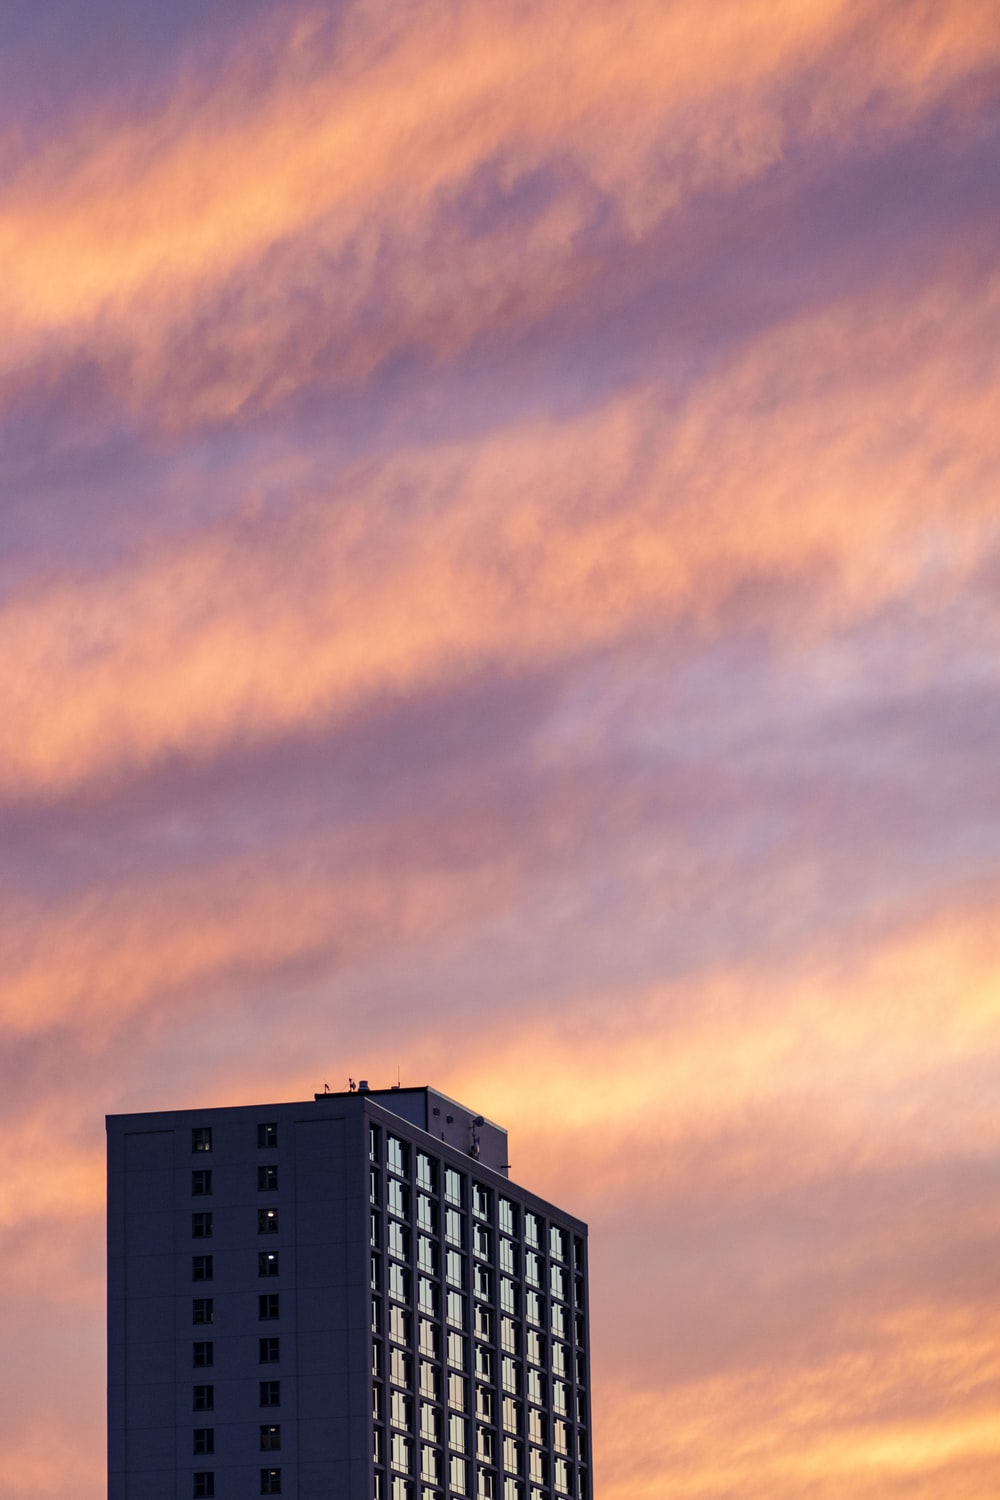 gray high-rise building under a cloudy sky during golden hour